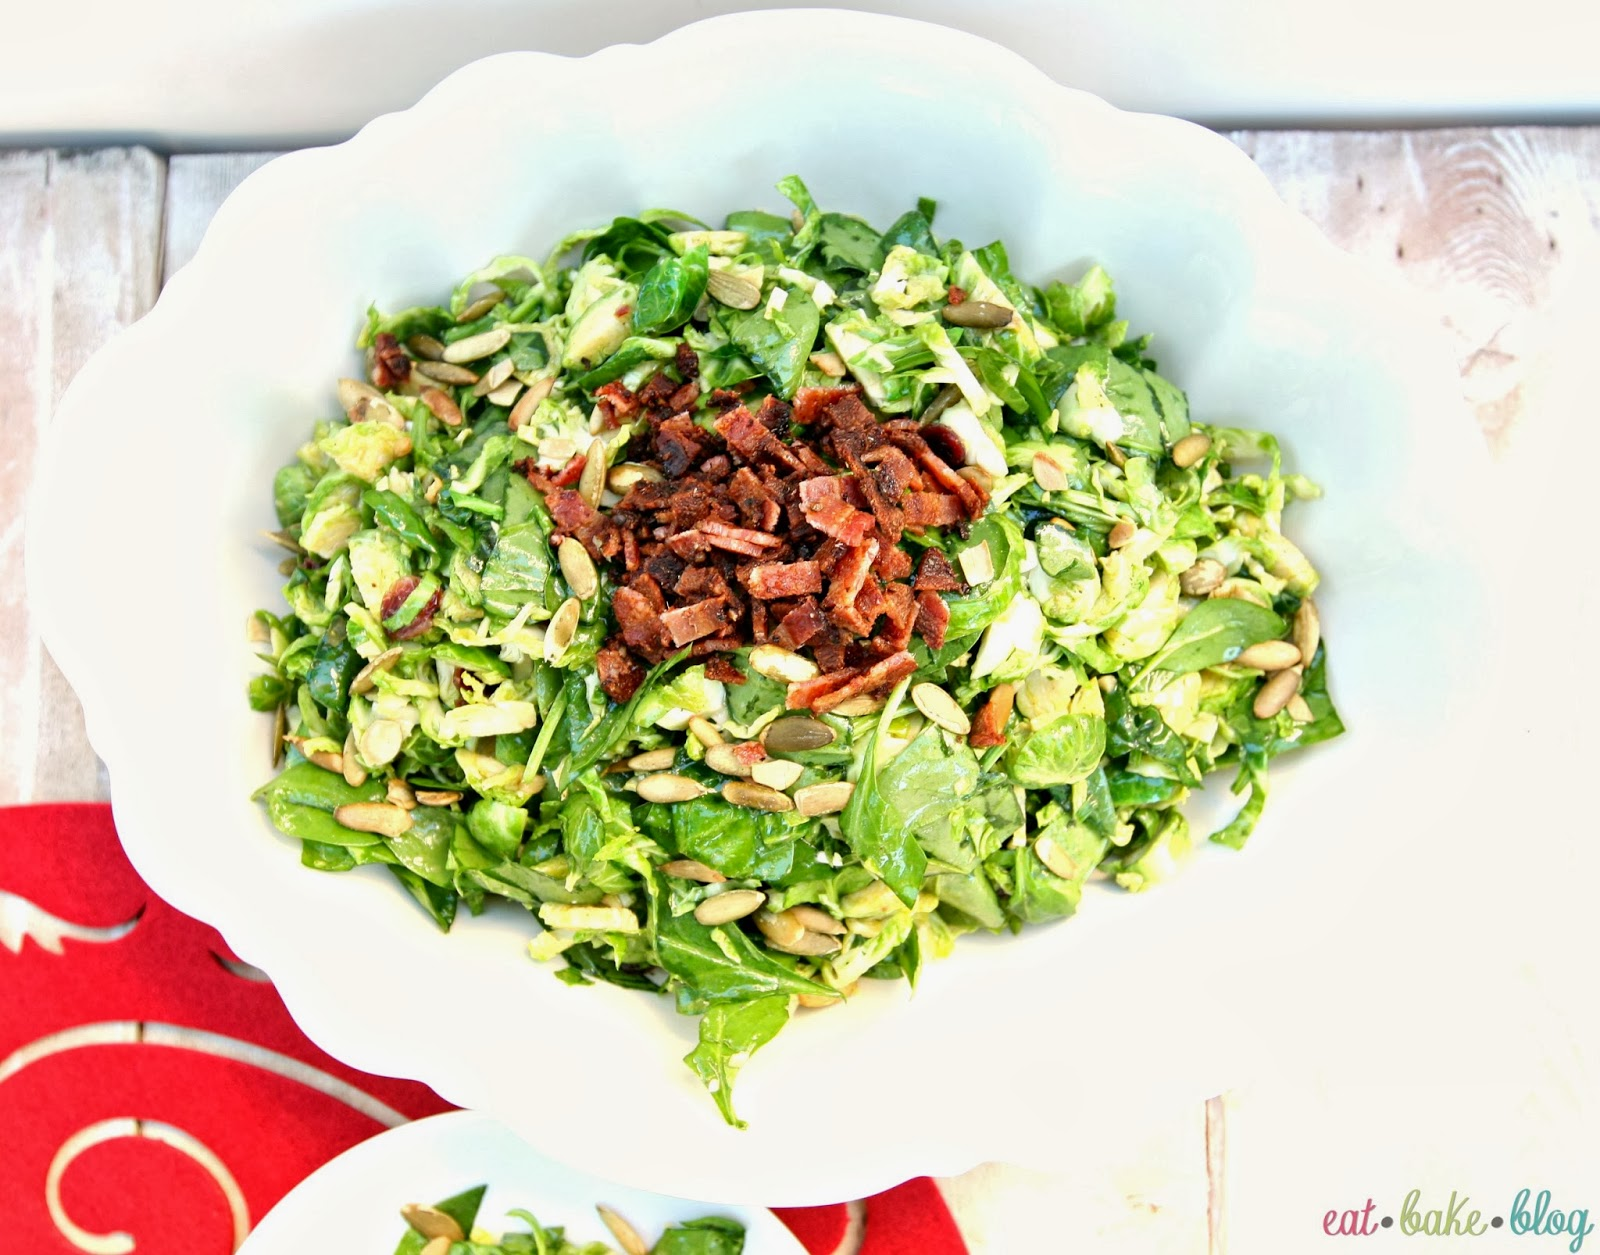 #wwsponsored #lovehealthyme best brussels sprouts salad easy entertaining easy brussels sprout recipe best brussels sprouts recipe weight watchers simple start healthy salad recipe